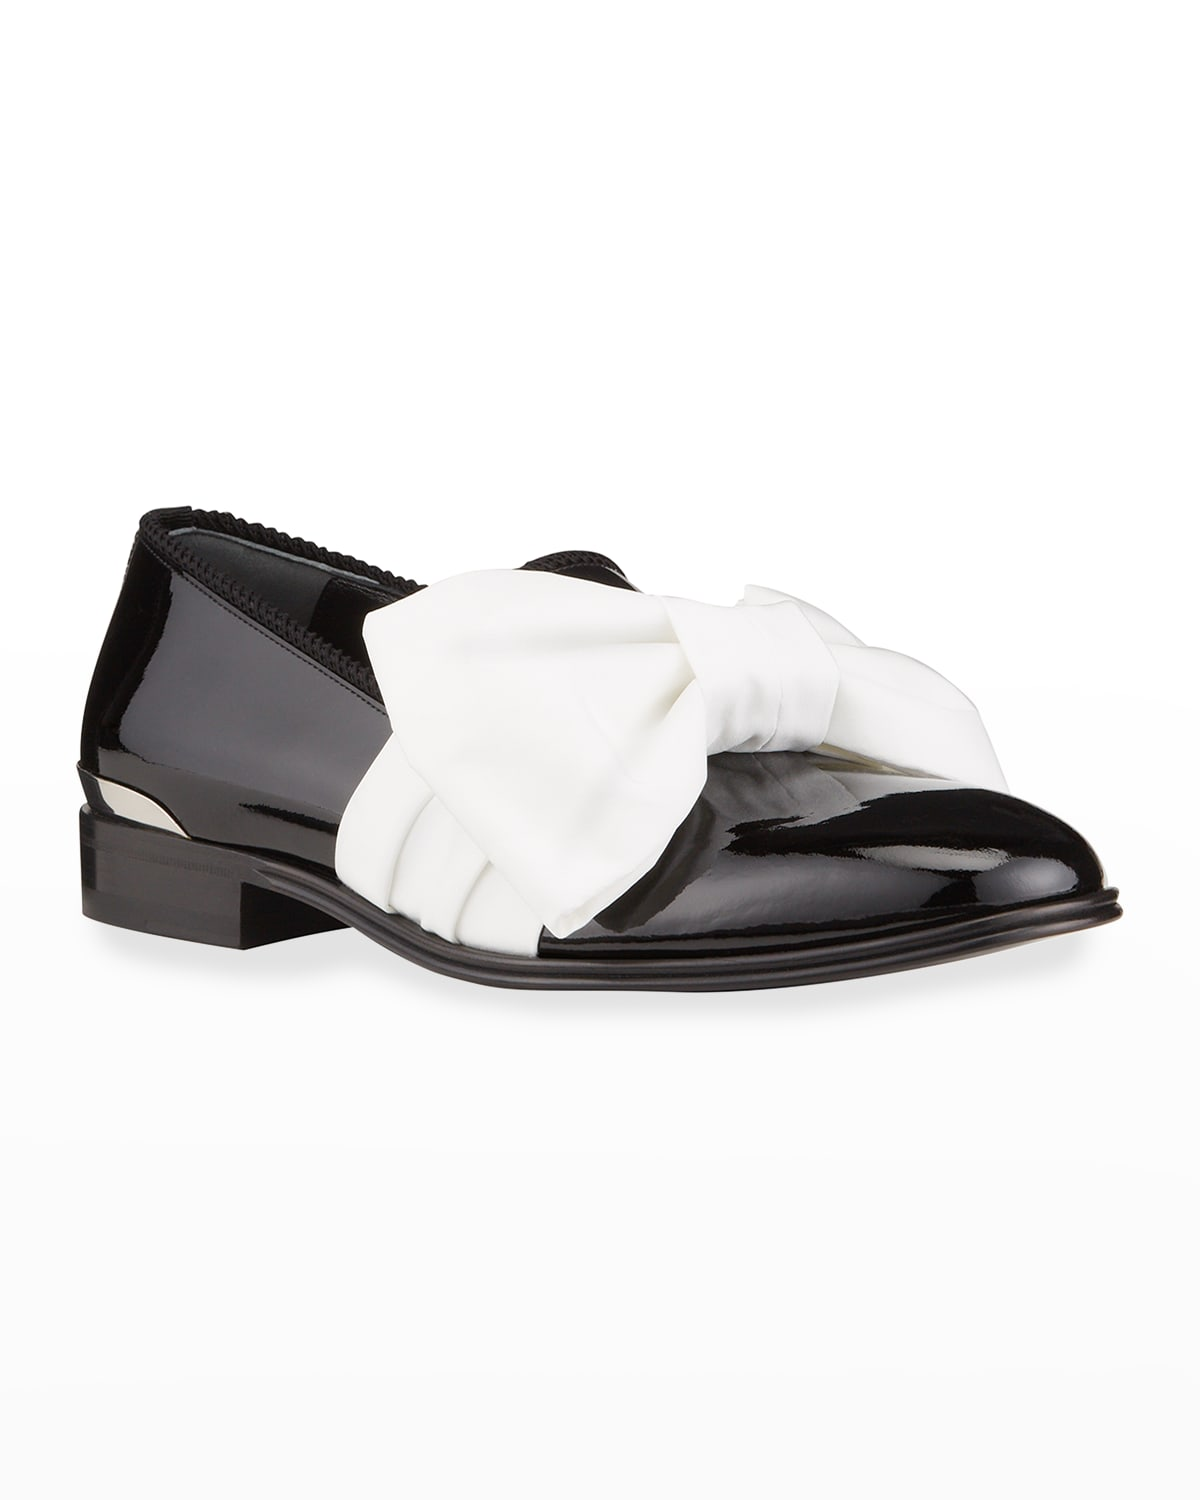 Men's Bow Patent Slippers